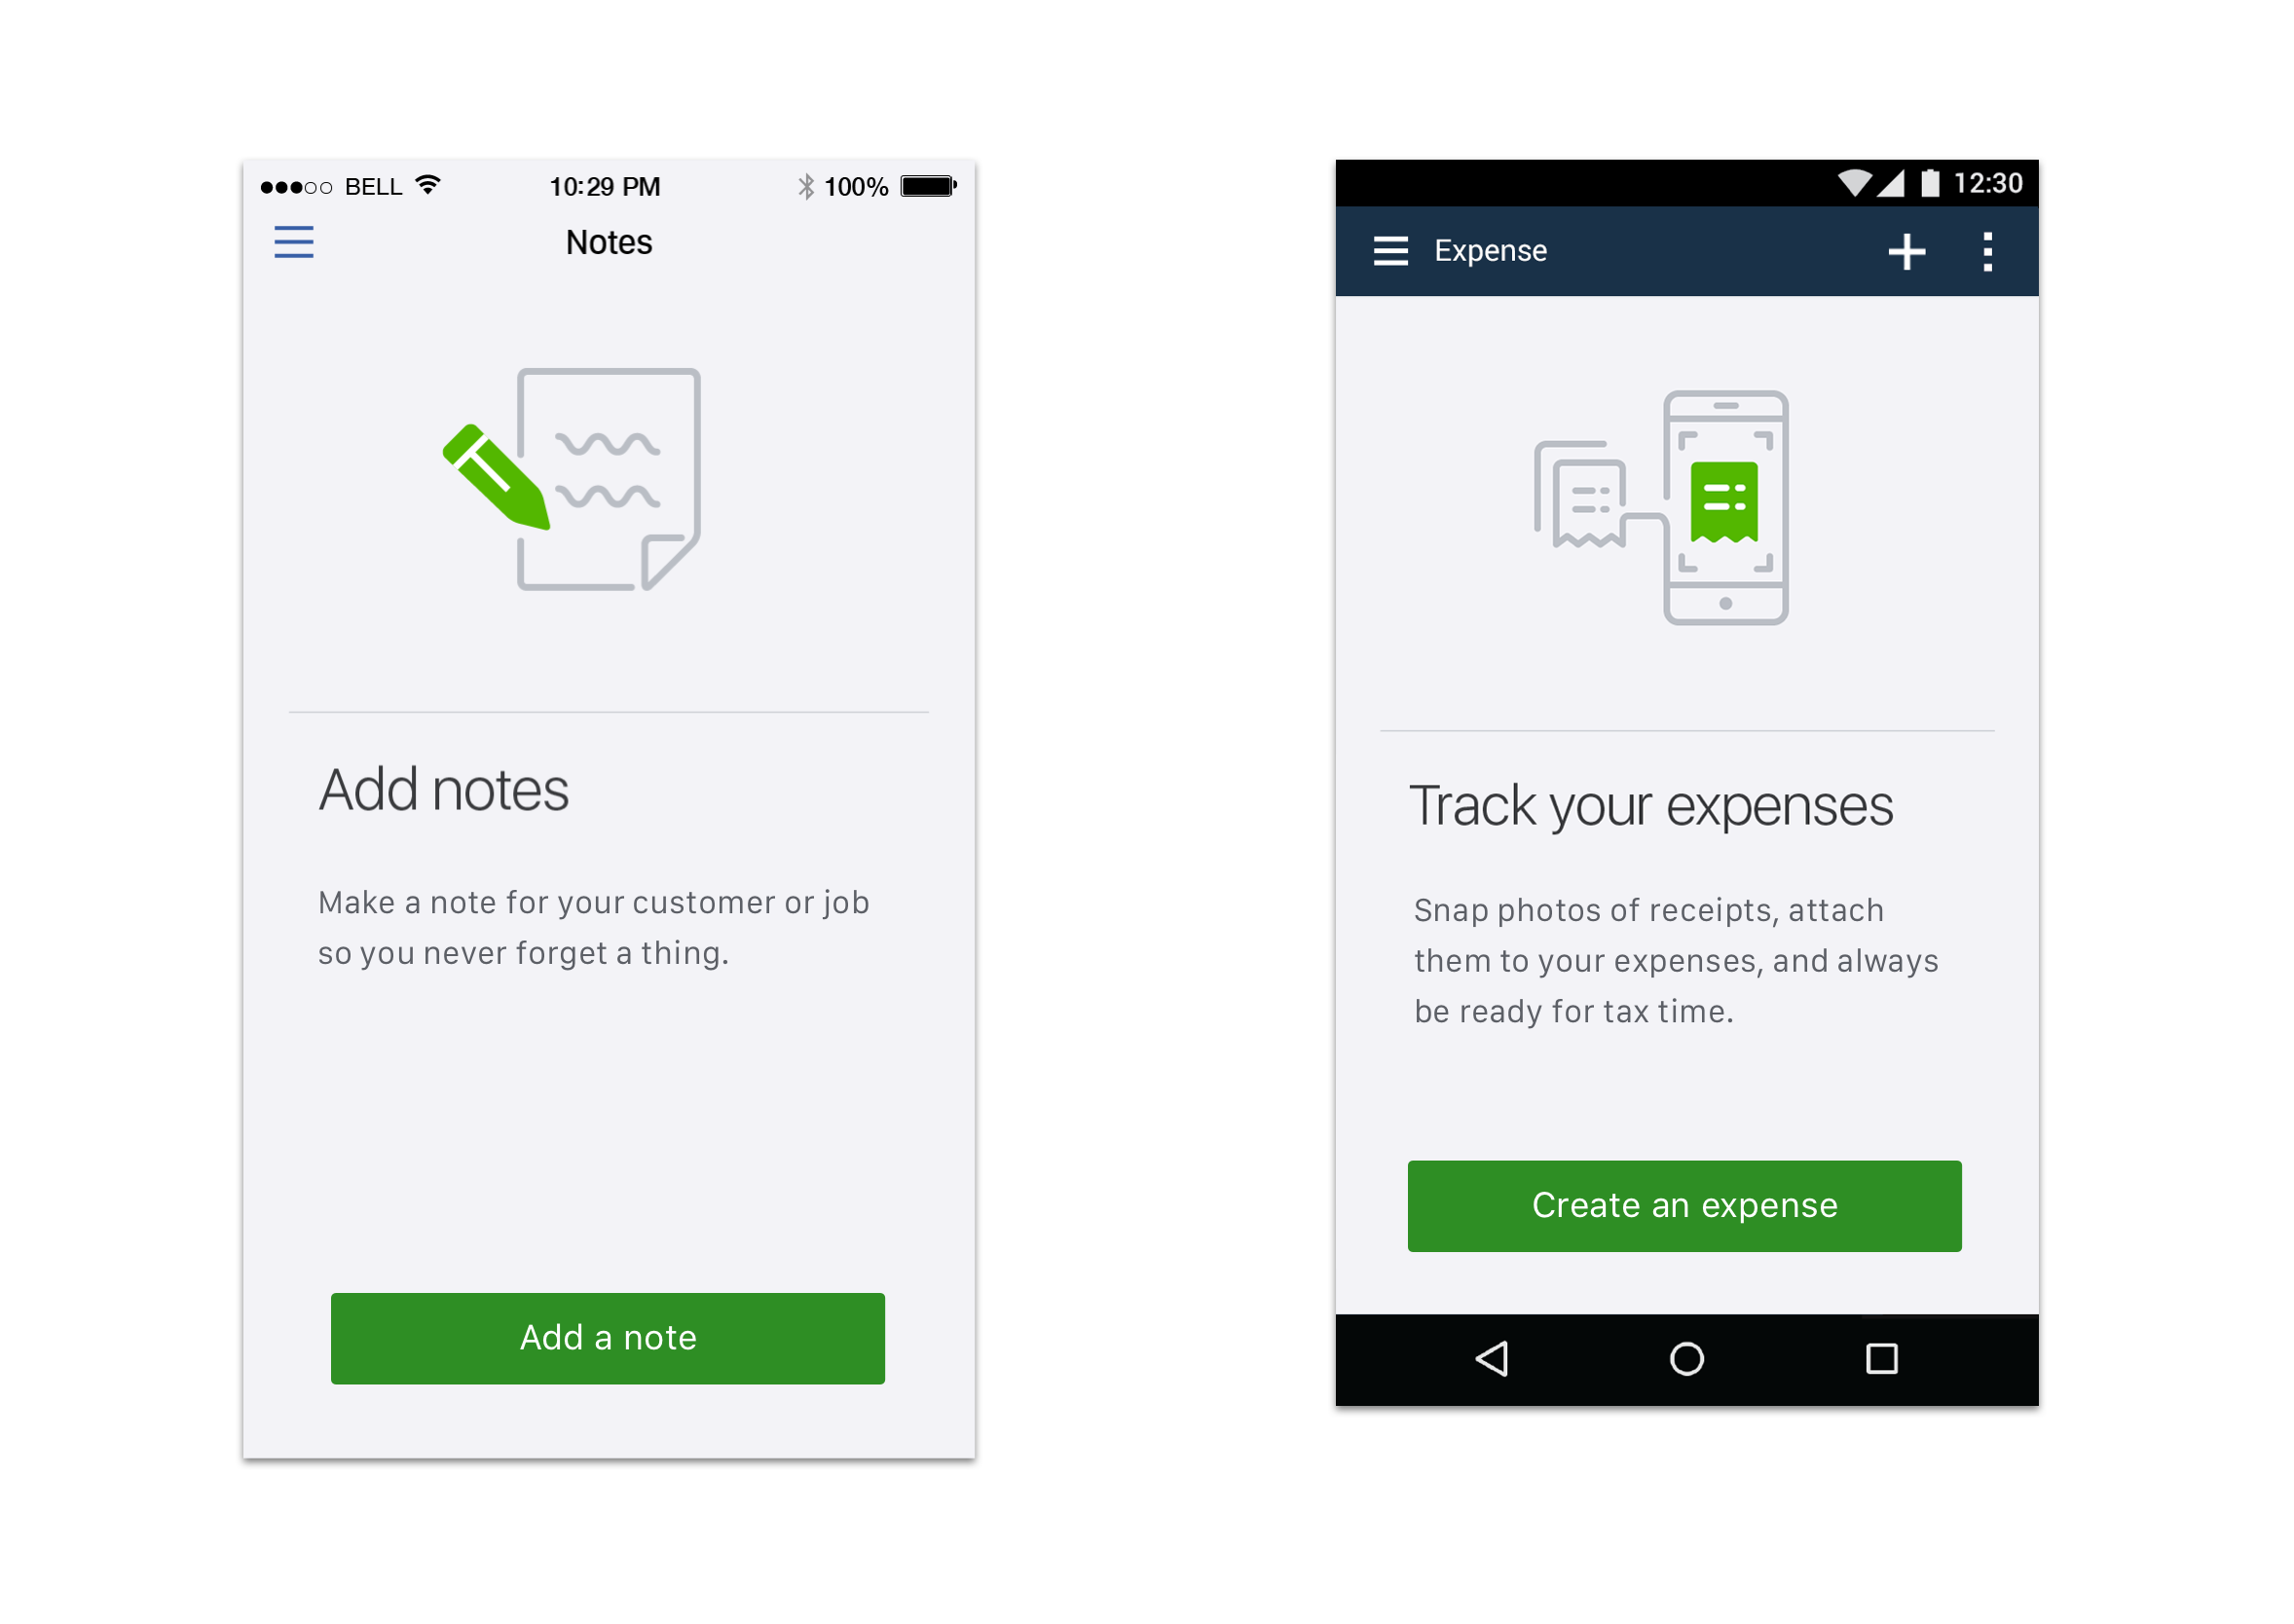 Designing for Mobile Apps: Overall Principles, Common